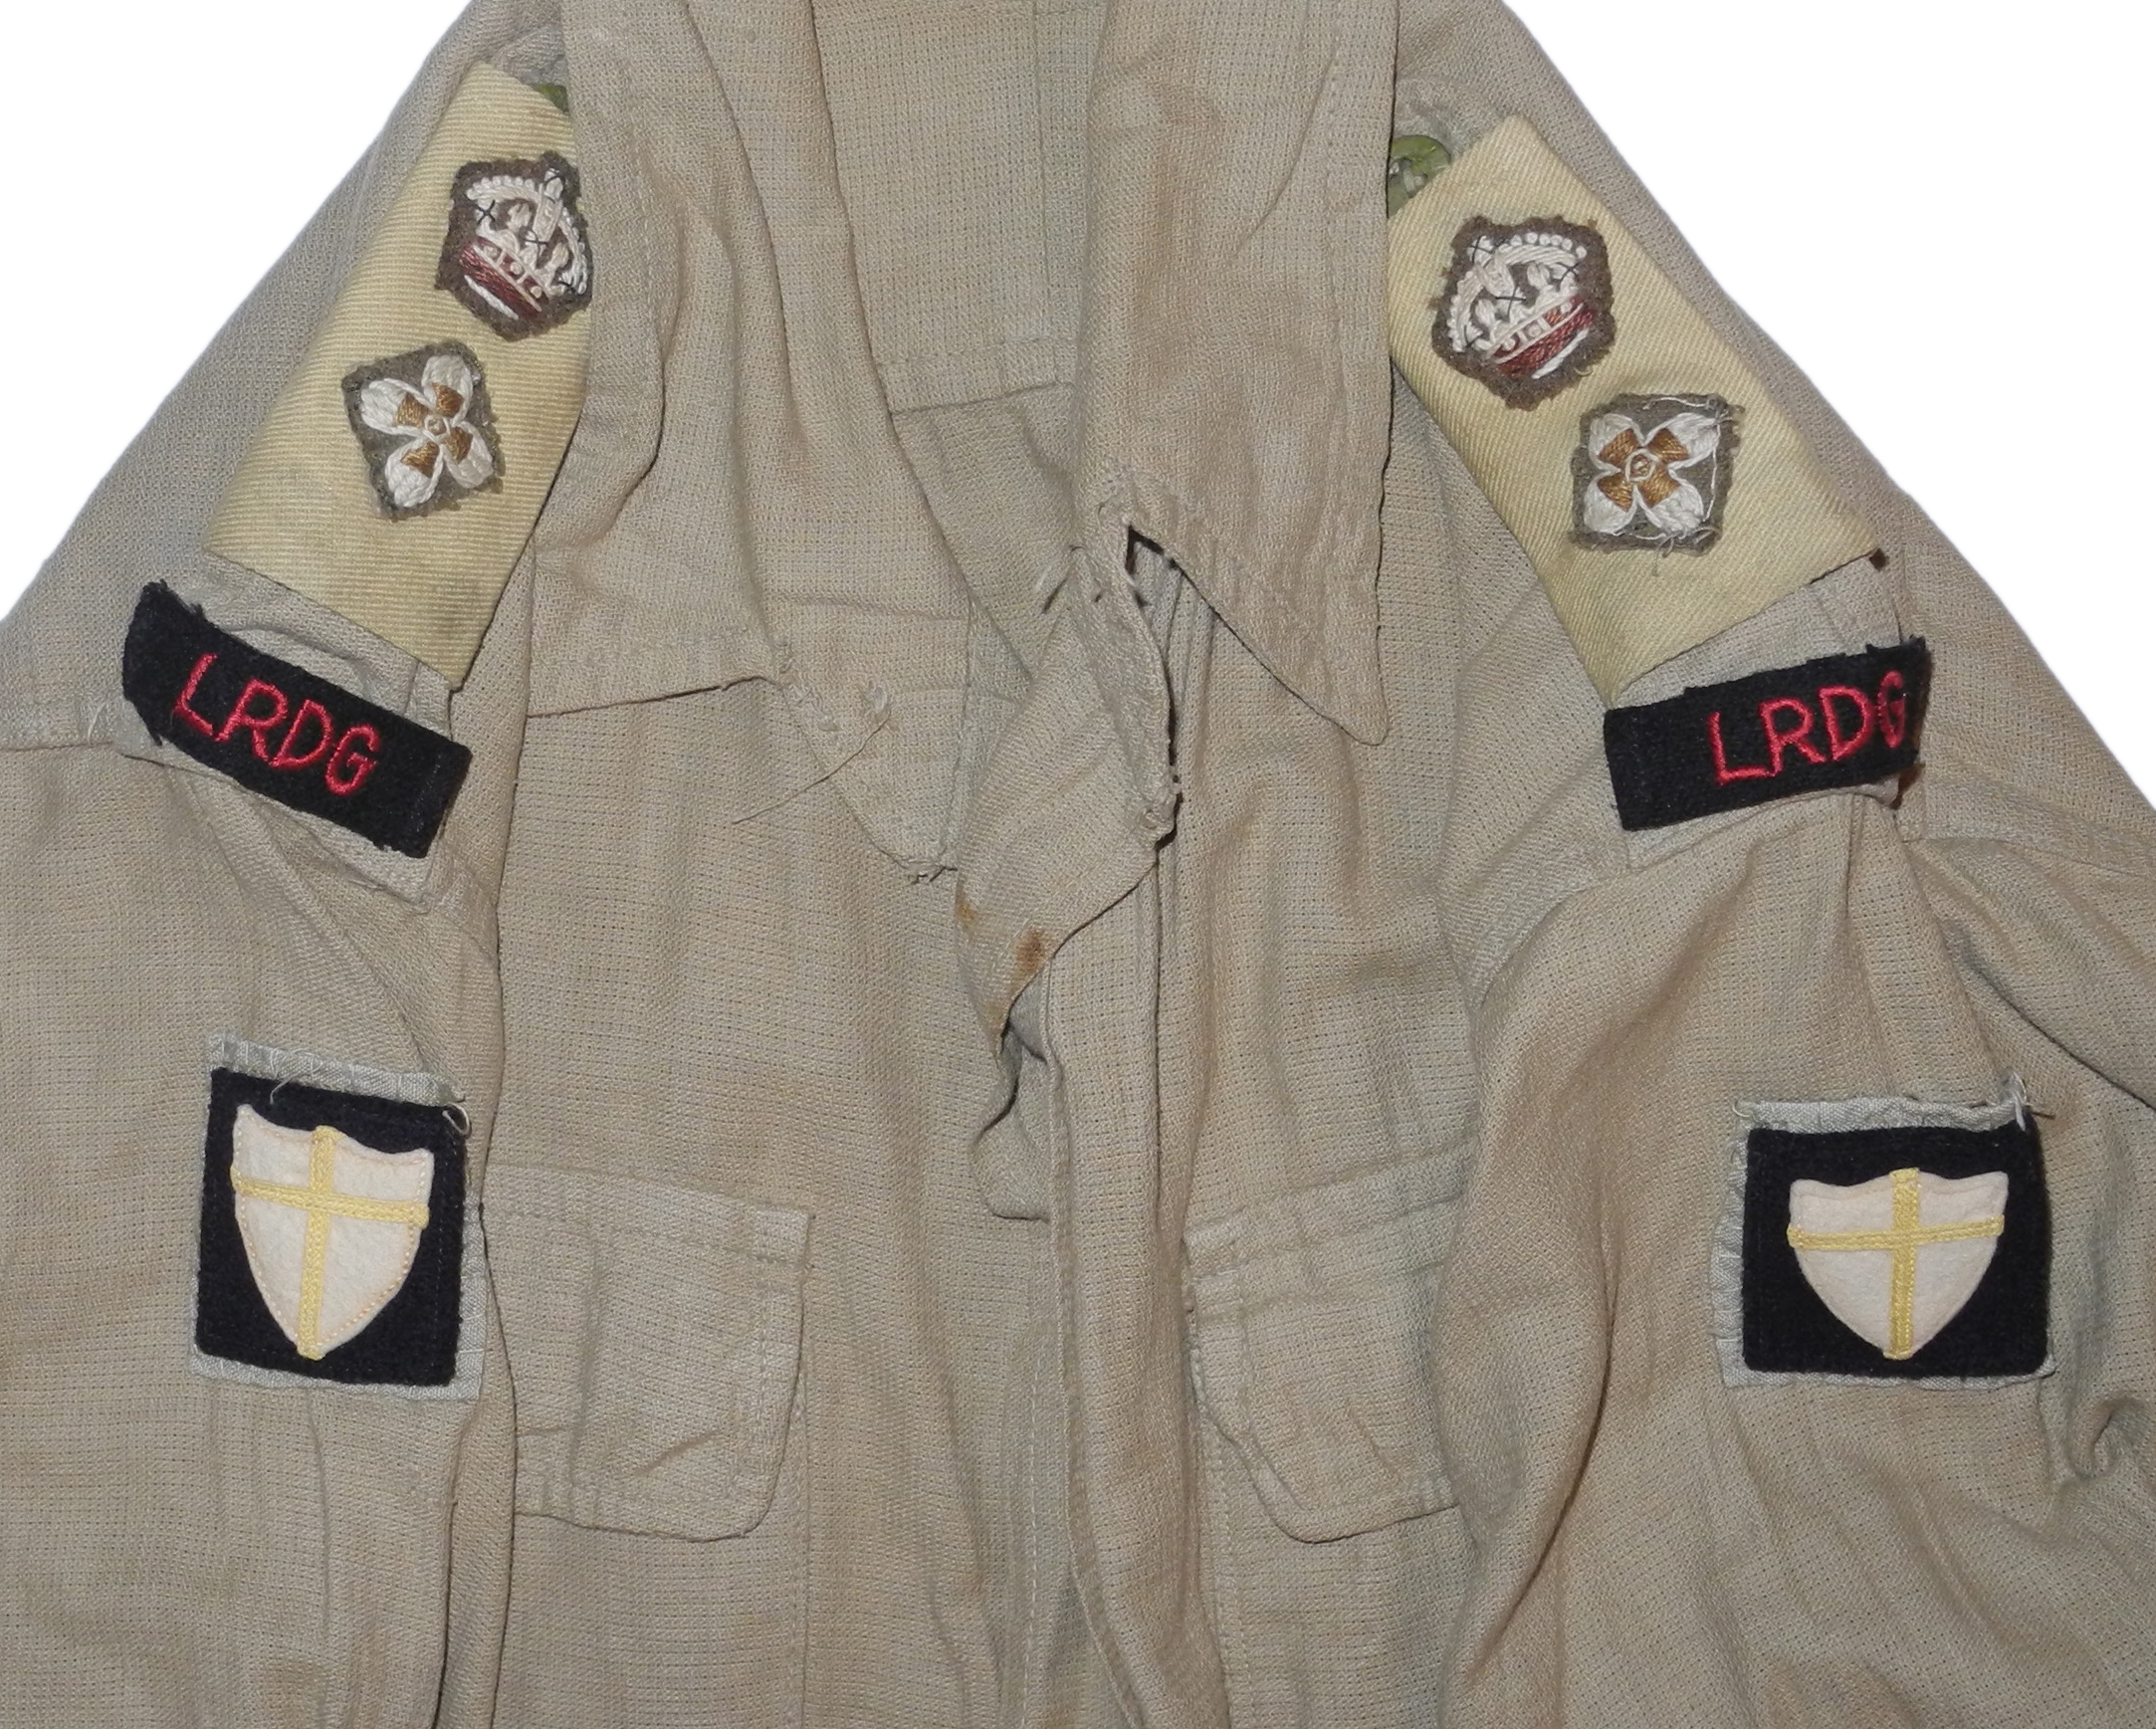 British 8th Army LRDG bush shirt/jacket19